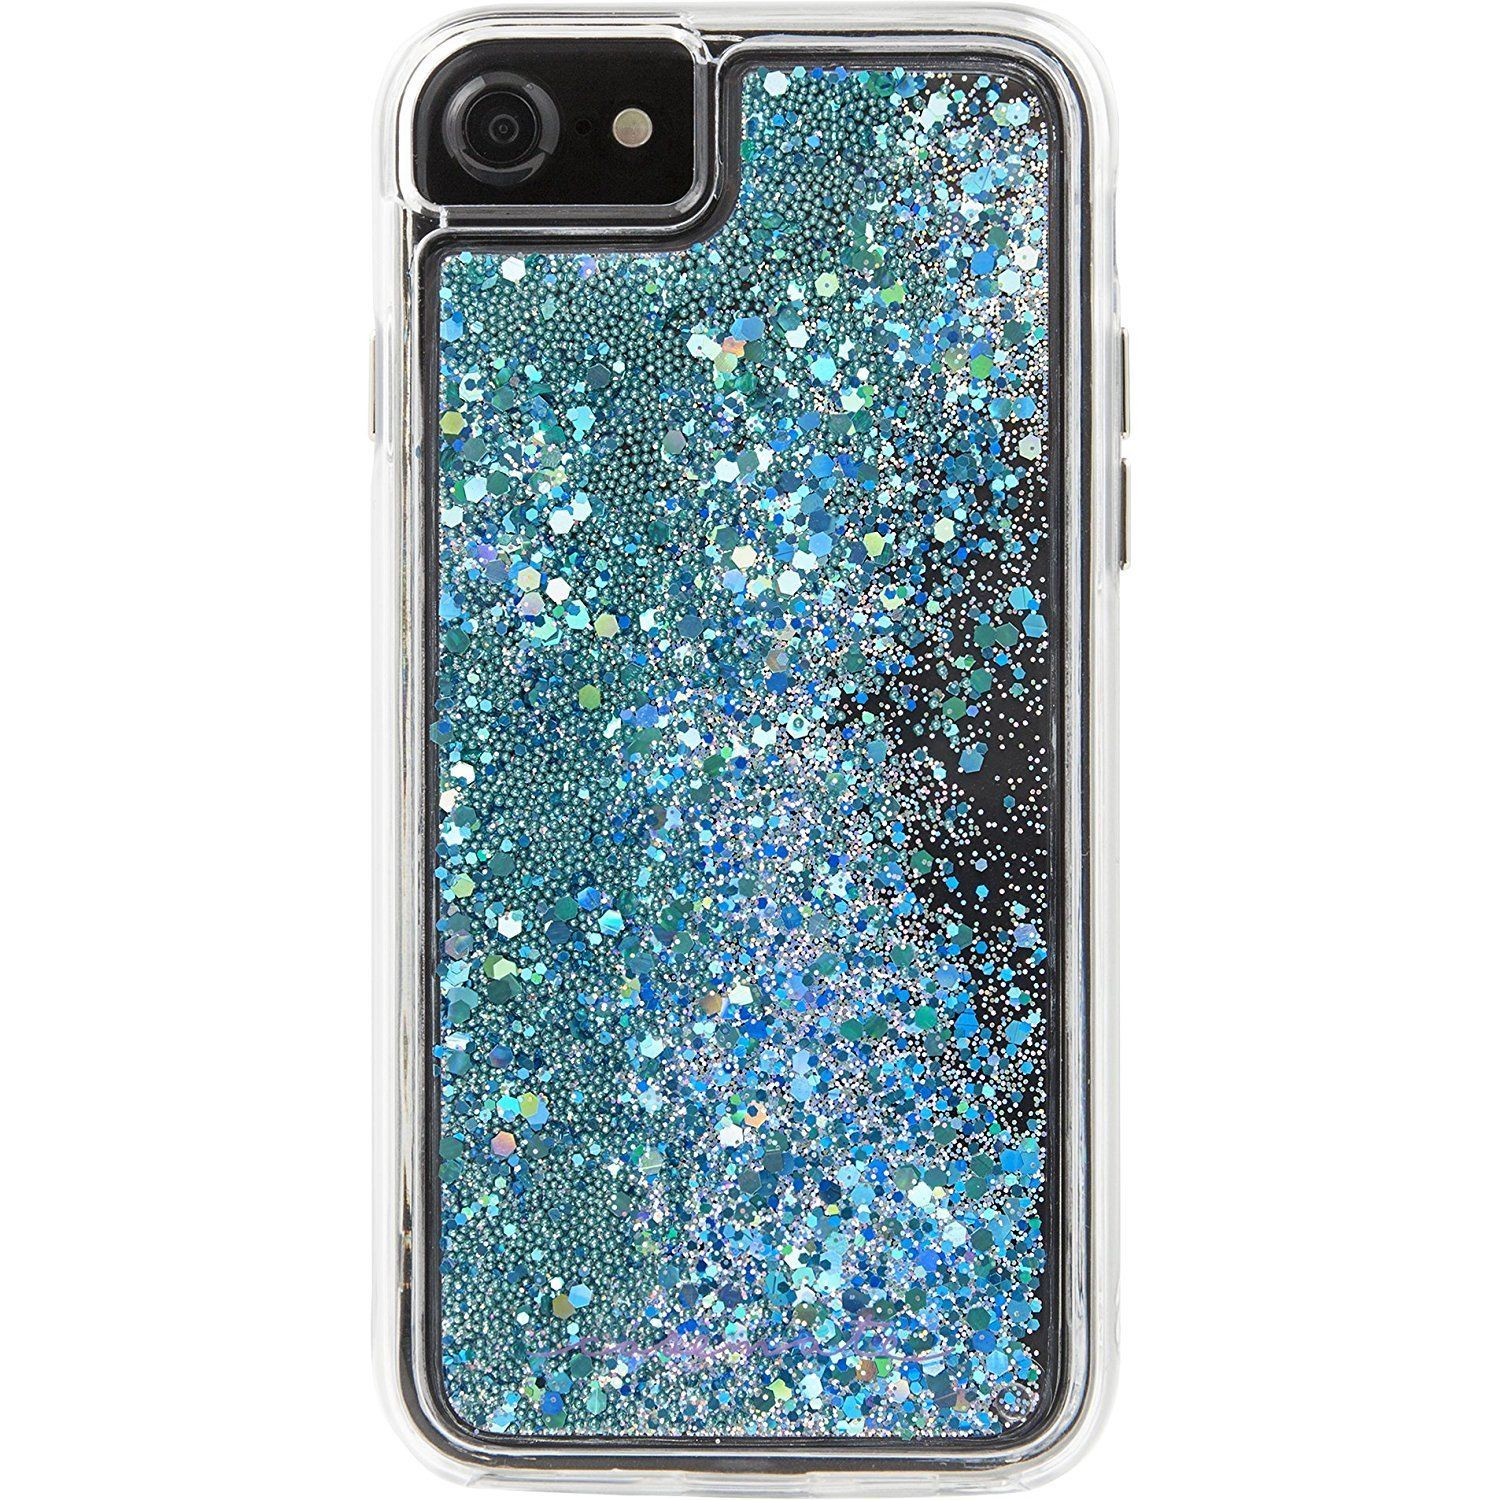 Casemate waterfall case for iphone 6 s and 7 blue by